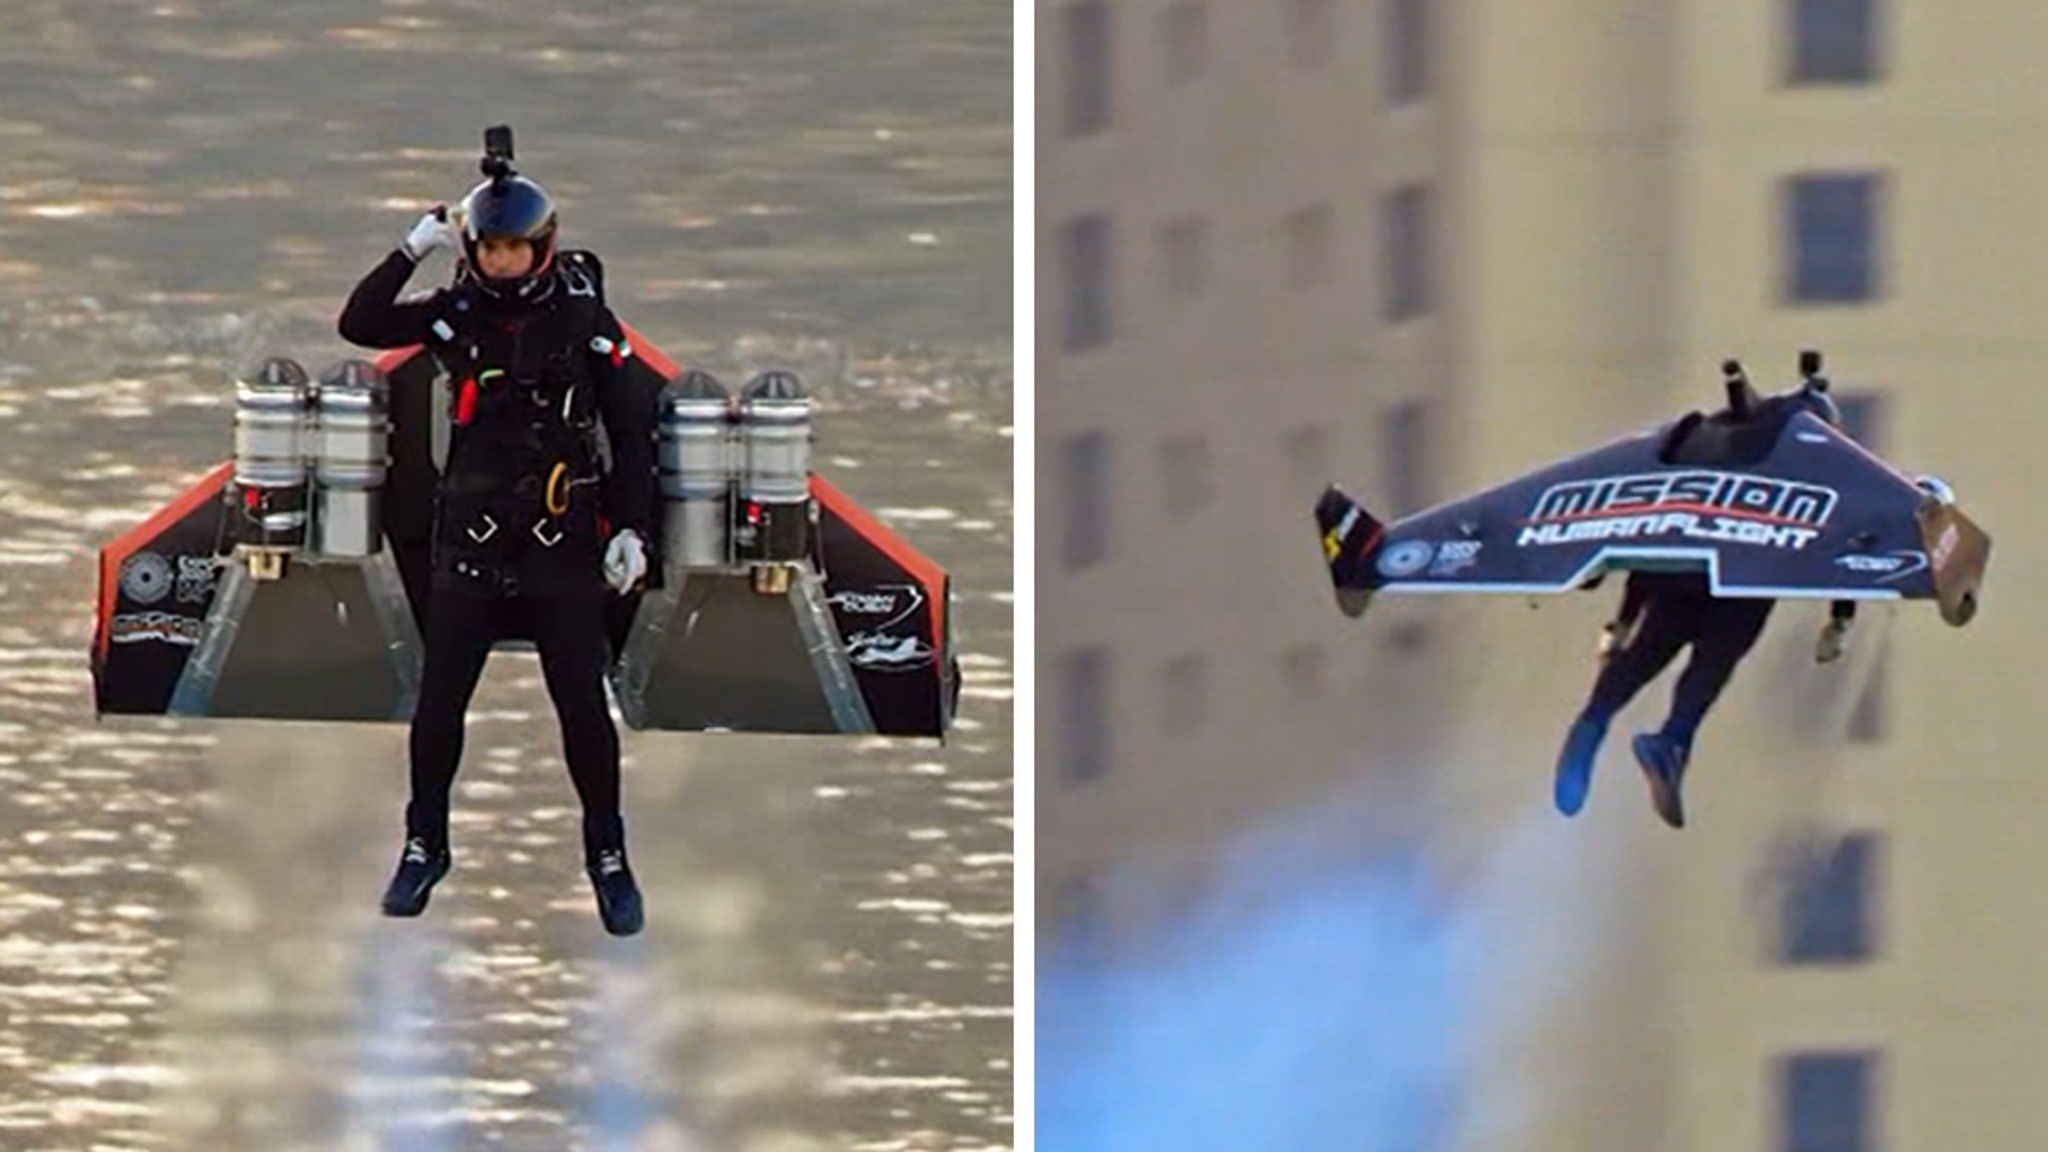 Dubai Company Debuts New Jetpack That Looks Straight Out of a Movie